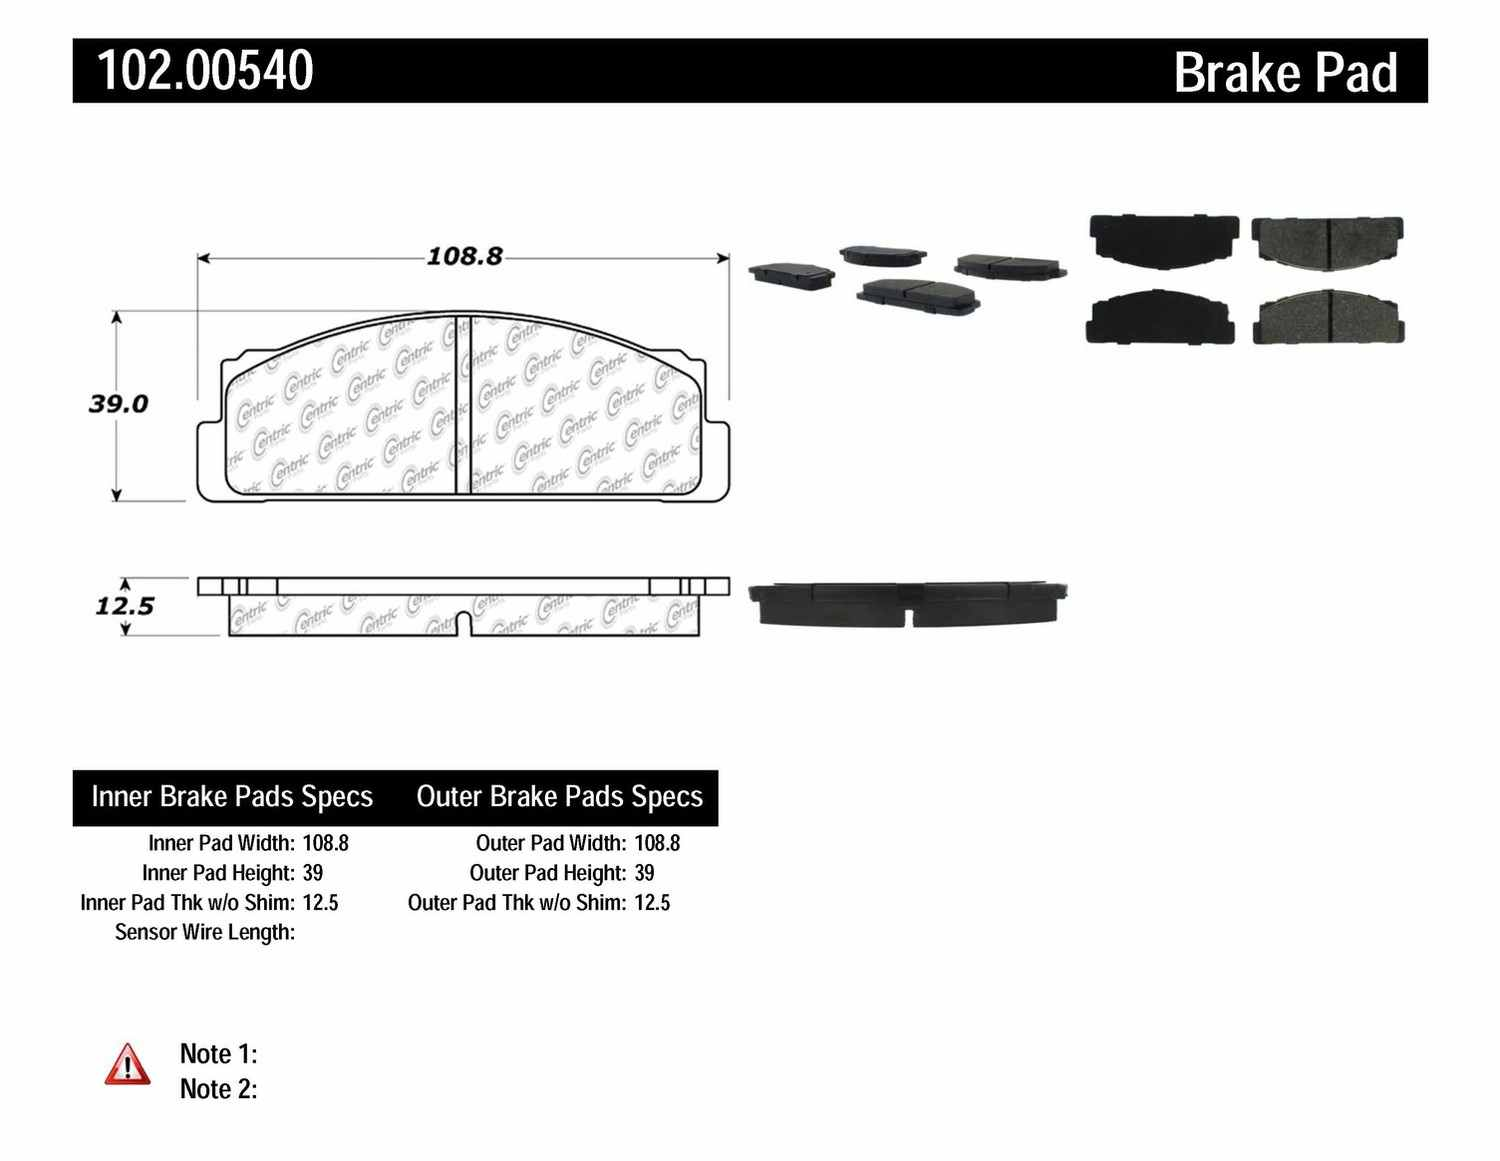 C-TEK BY CENTRIC - C-TEK Metallic Brake Pads-Preferred (Front) - CTK 102.00540